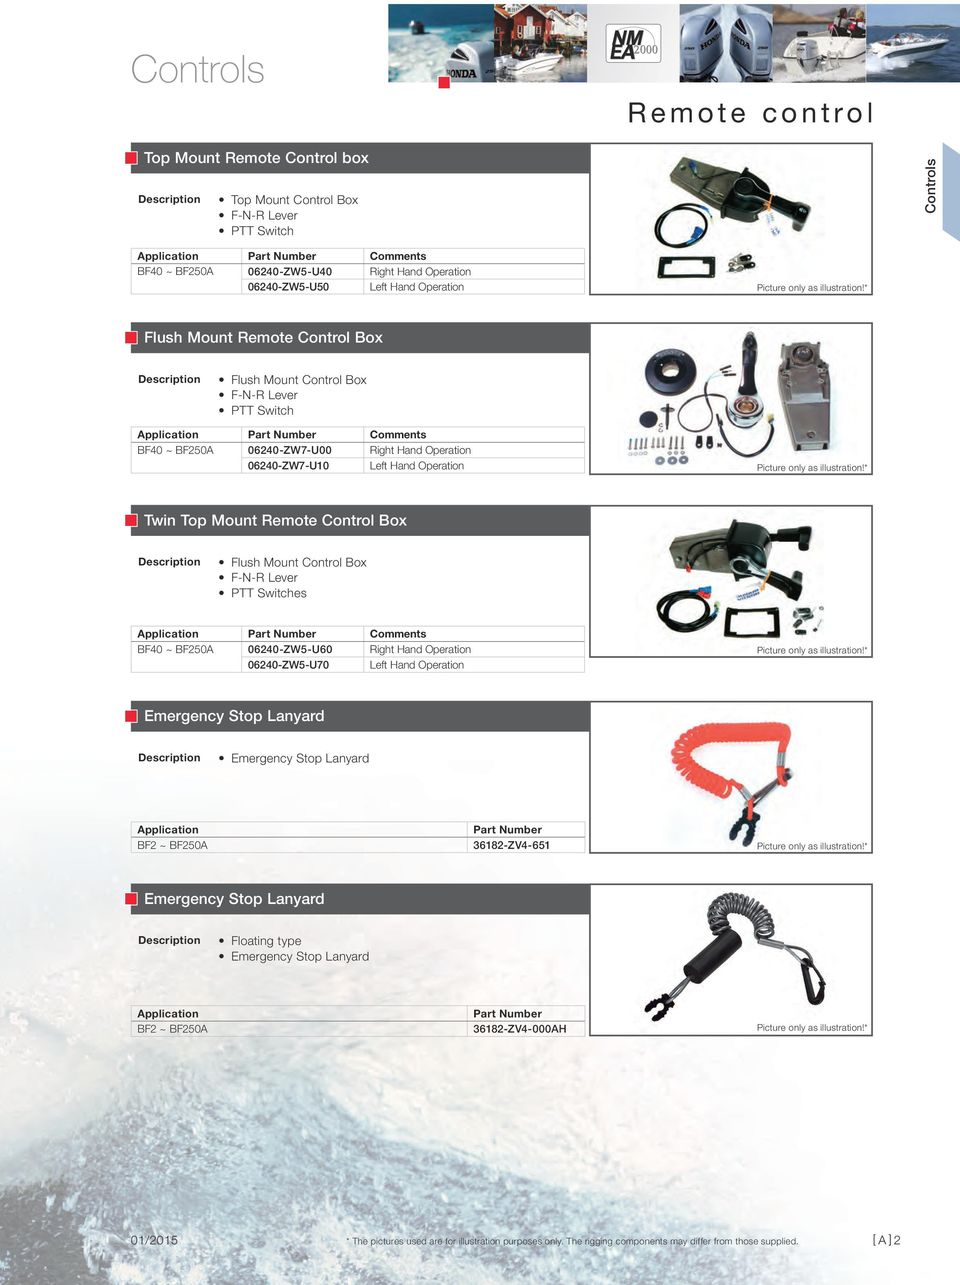 Honda Marine Accessories Pdf Bf 150 Wiring Diagram Twin Top Mount Remote Control Box Flush F N R Lever Ptt Switches Application Comments